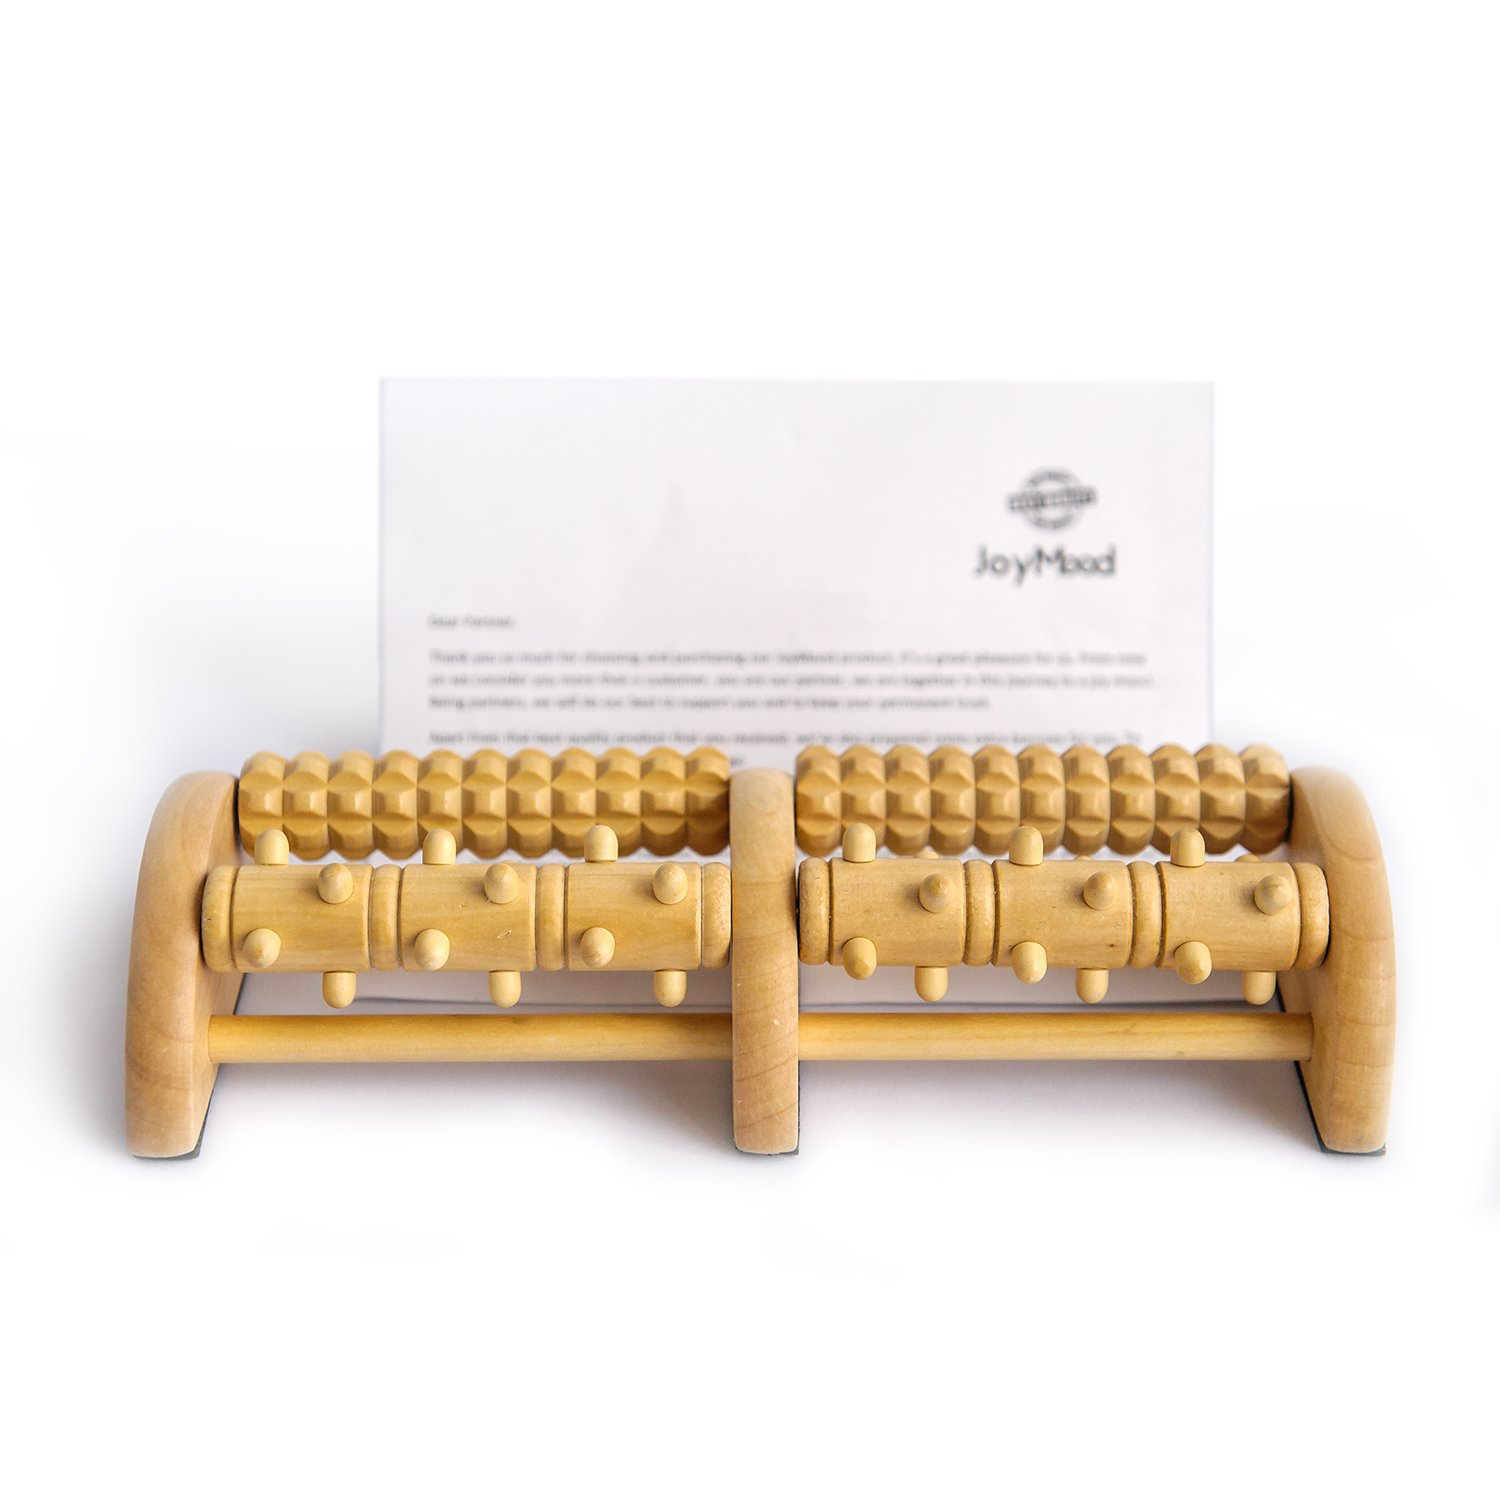 Foot Massager Wooden Roller - Relieve Plantar Fasciitis, Heel & Foot Arch Pain + Foot File Relaxation...